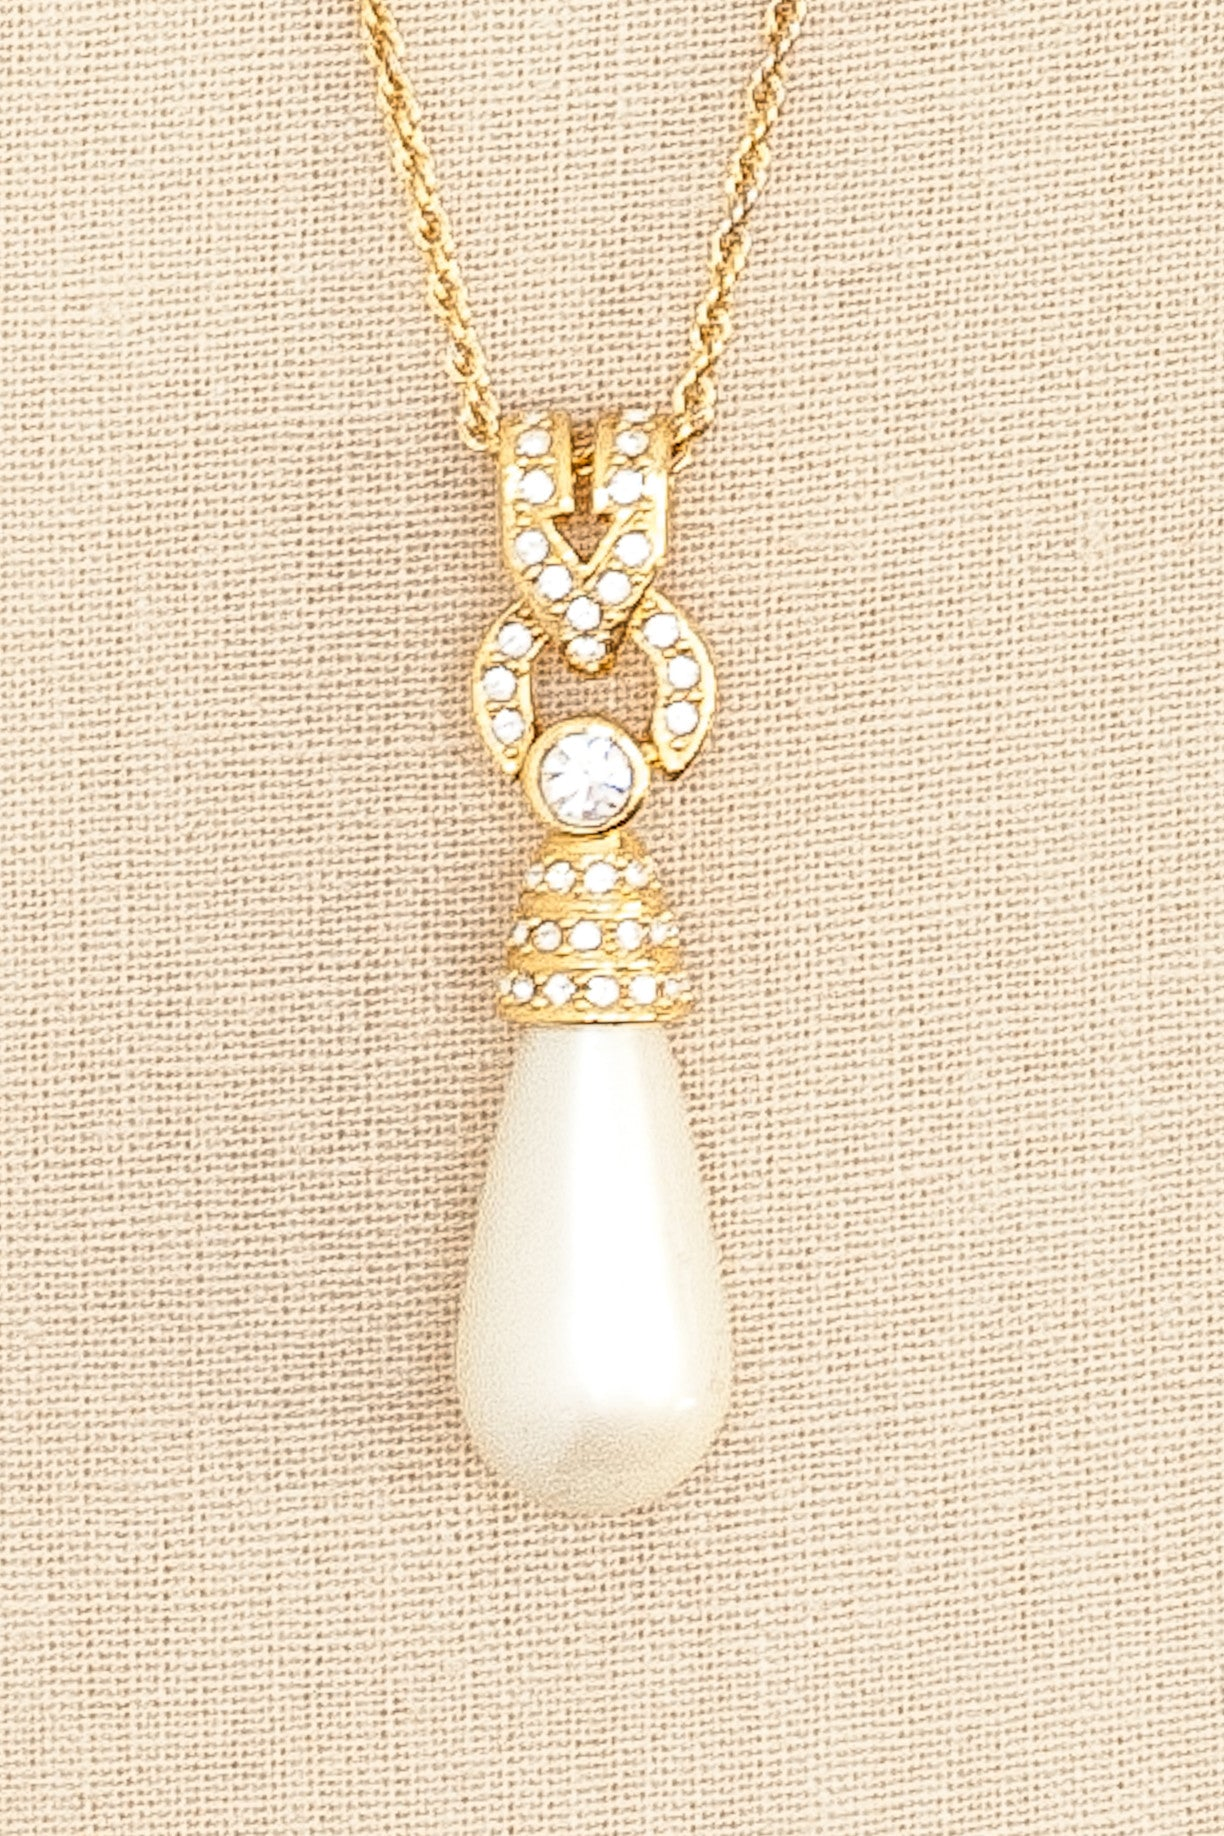 80's__Joan Rivers__Pearl Pendant Necklace